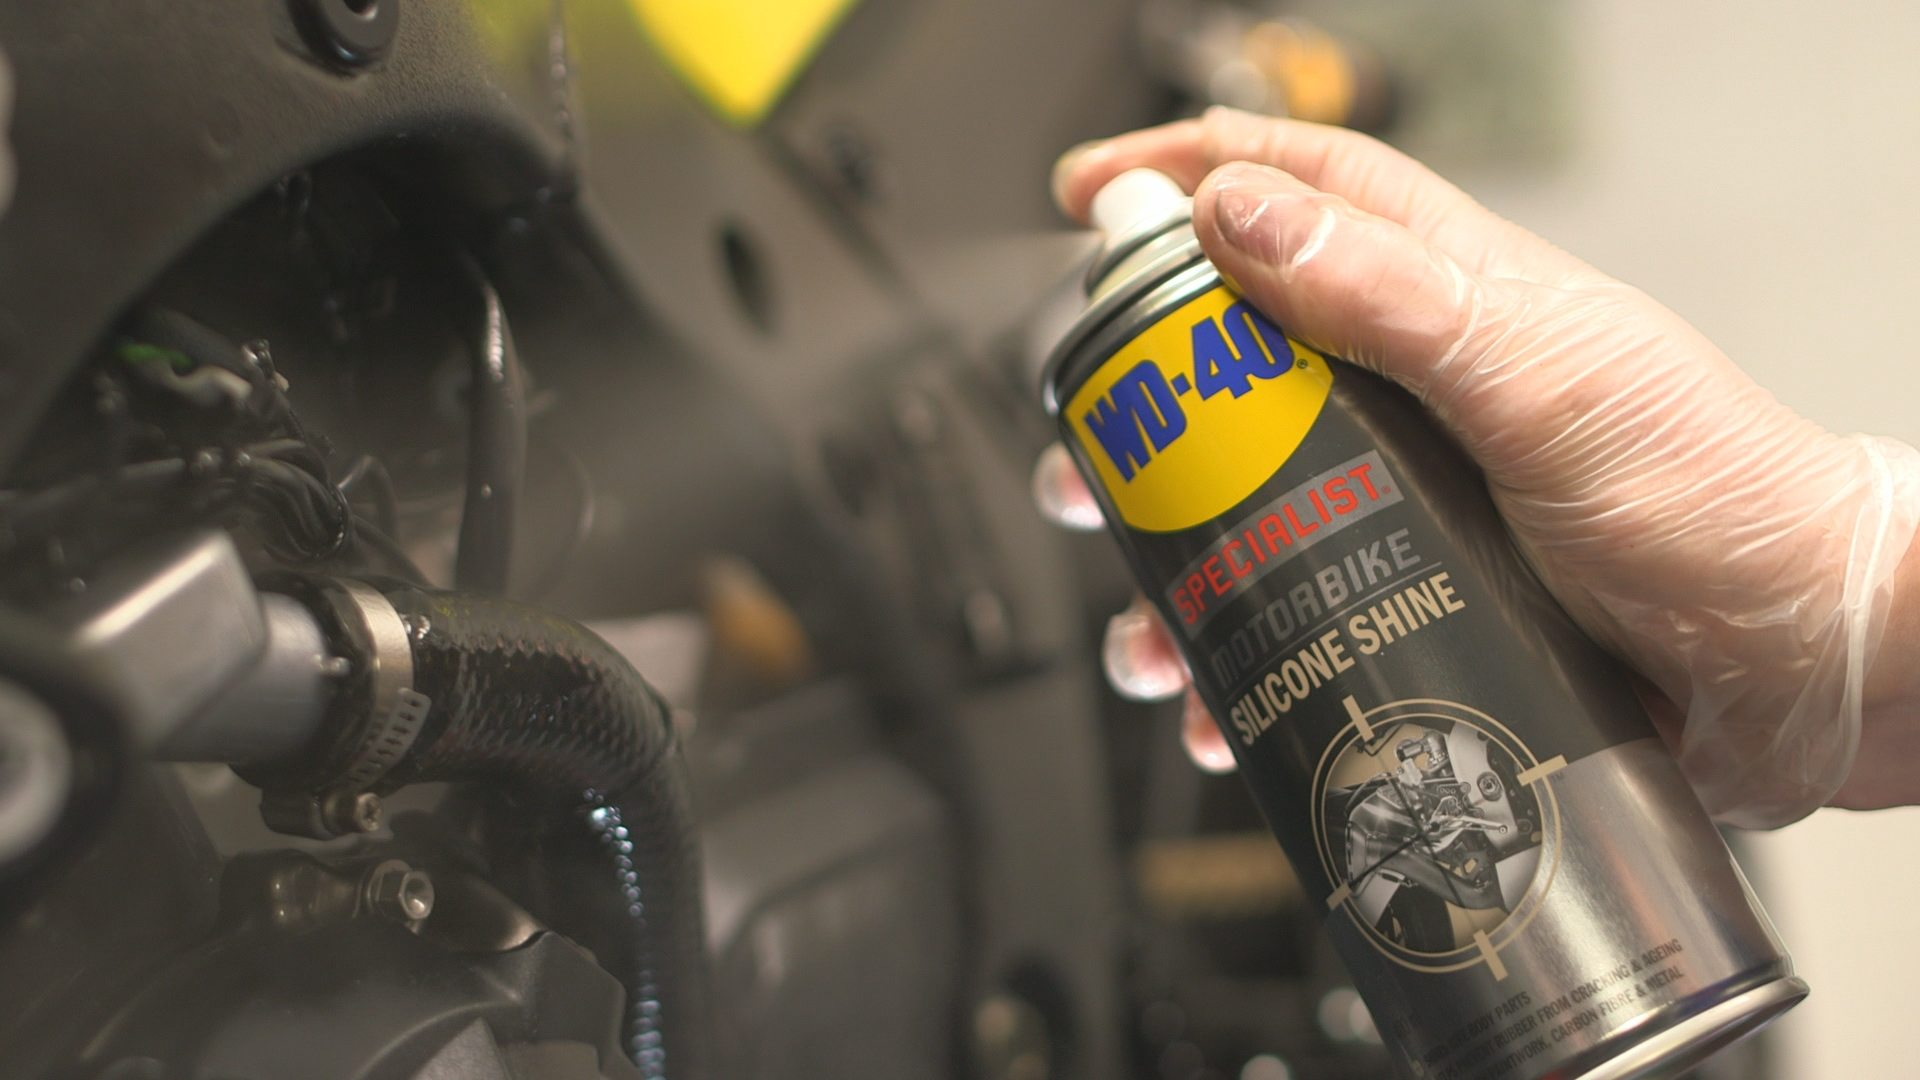 WD-40-_SP_MB_Silicone_Shine_5